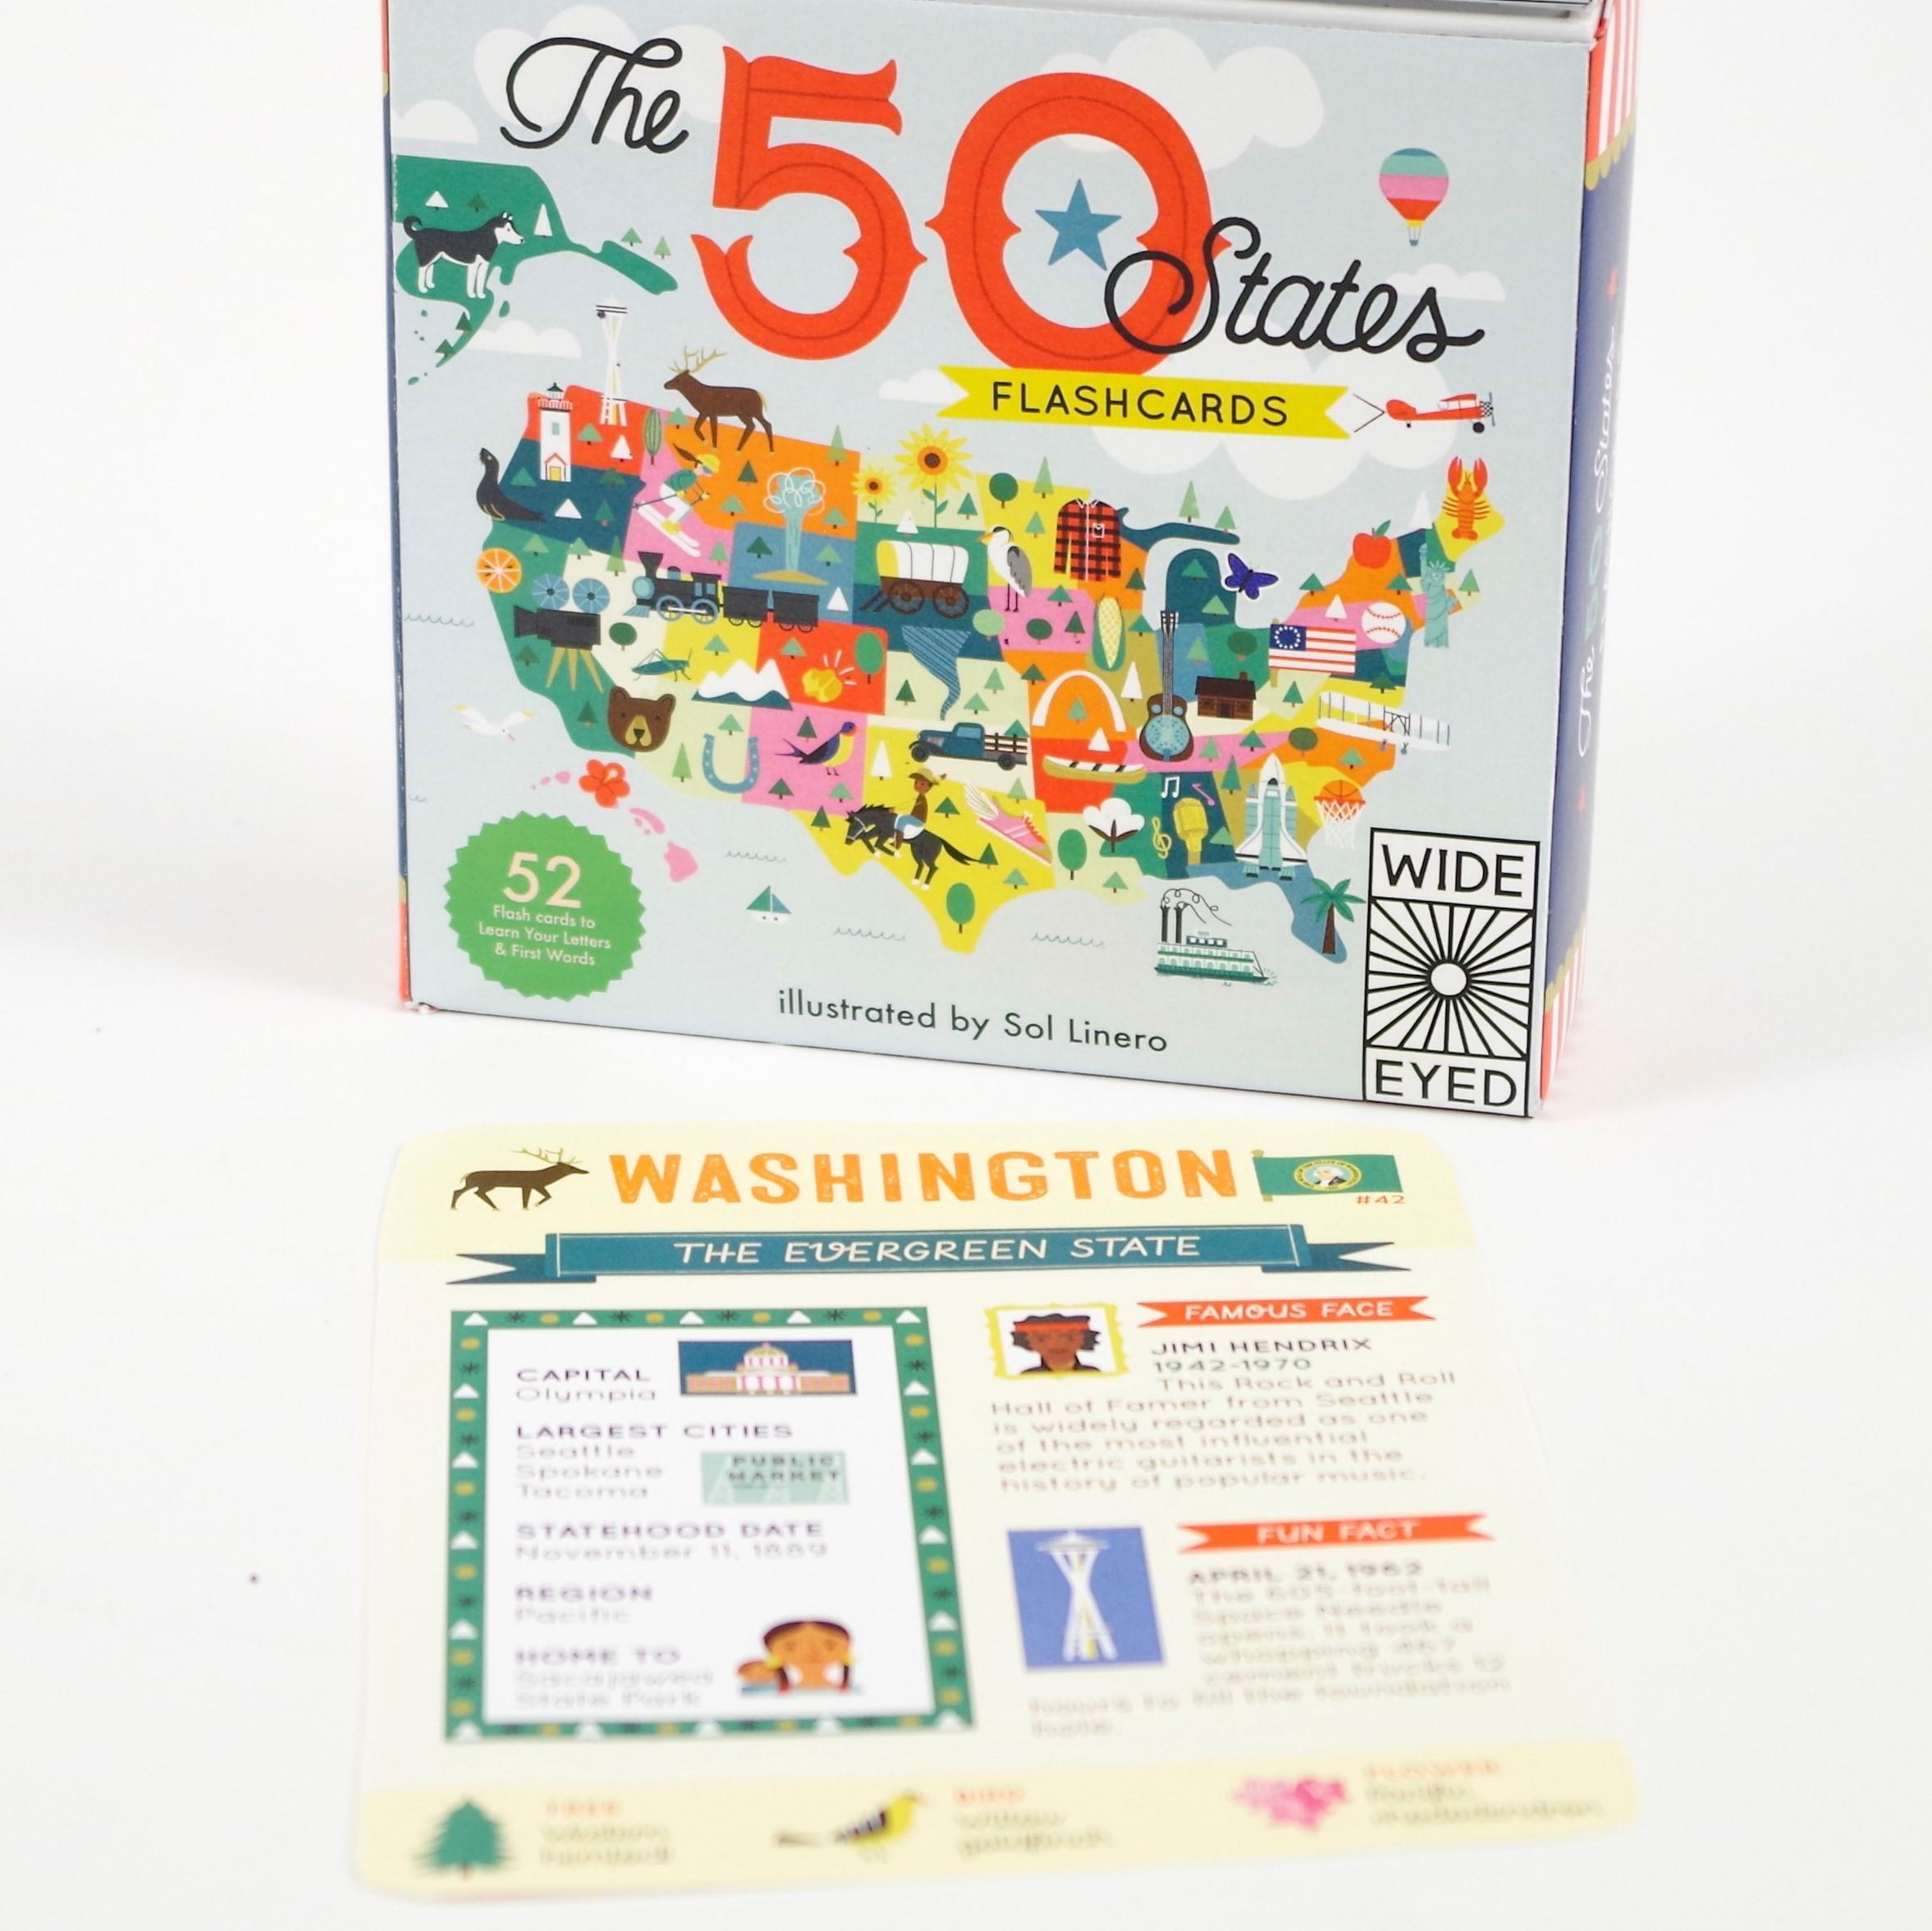 The 50 States - Flashcards: Gabrielle Balkan, Sol Linero